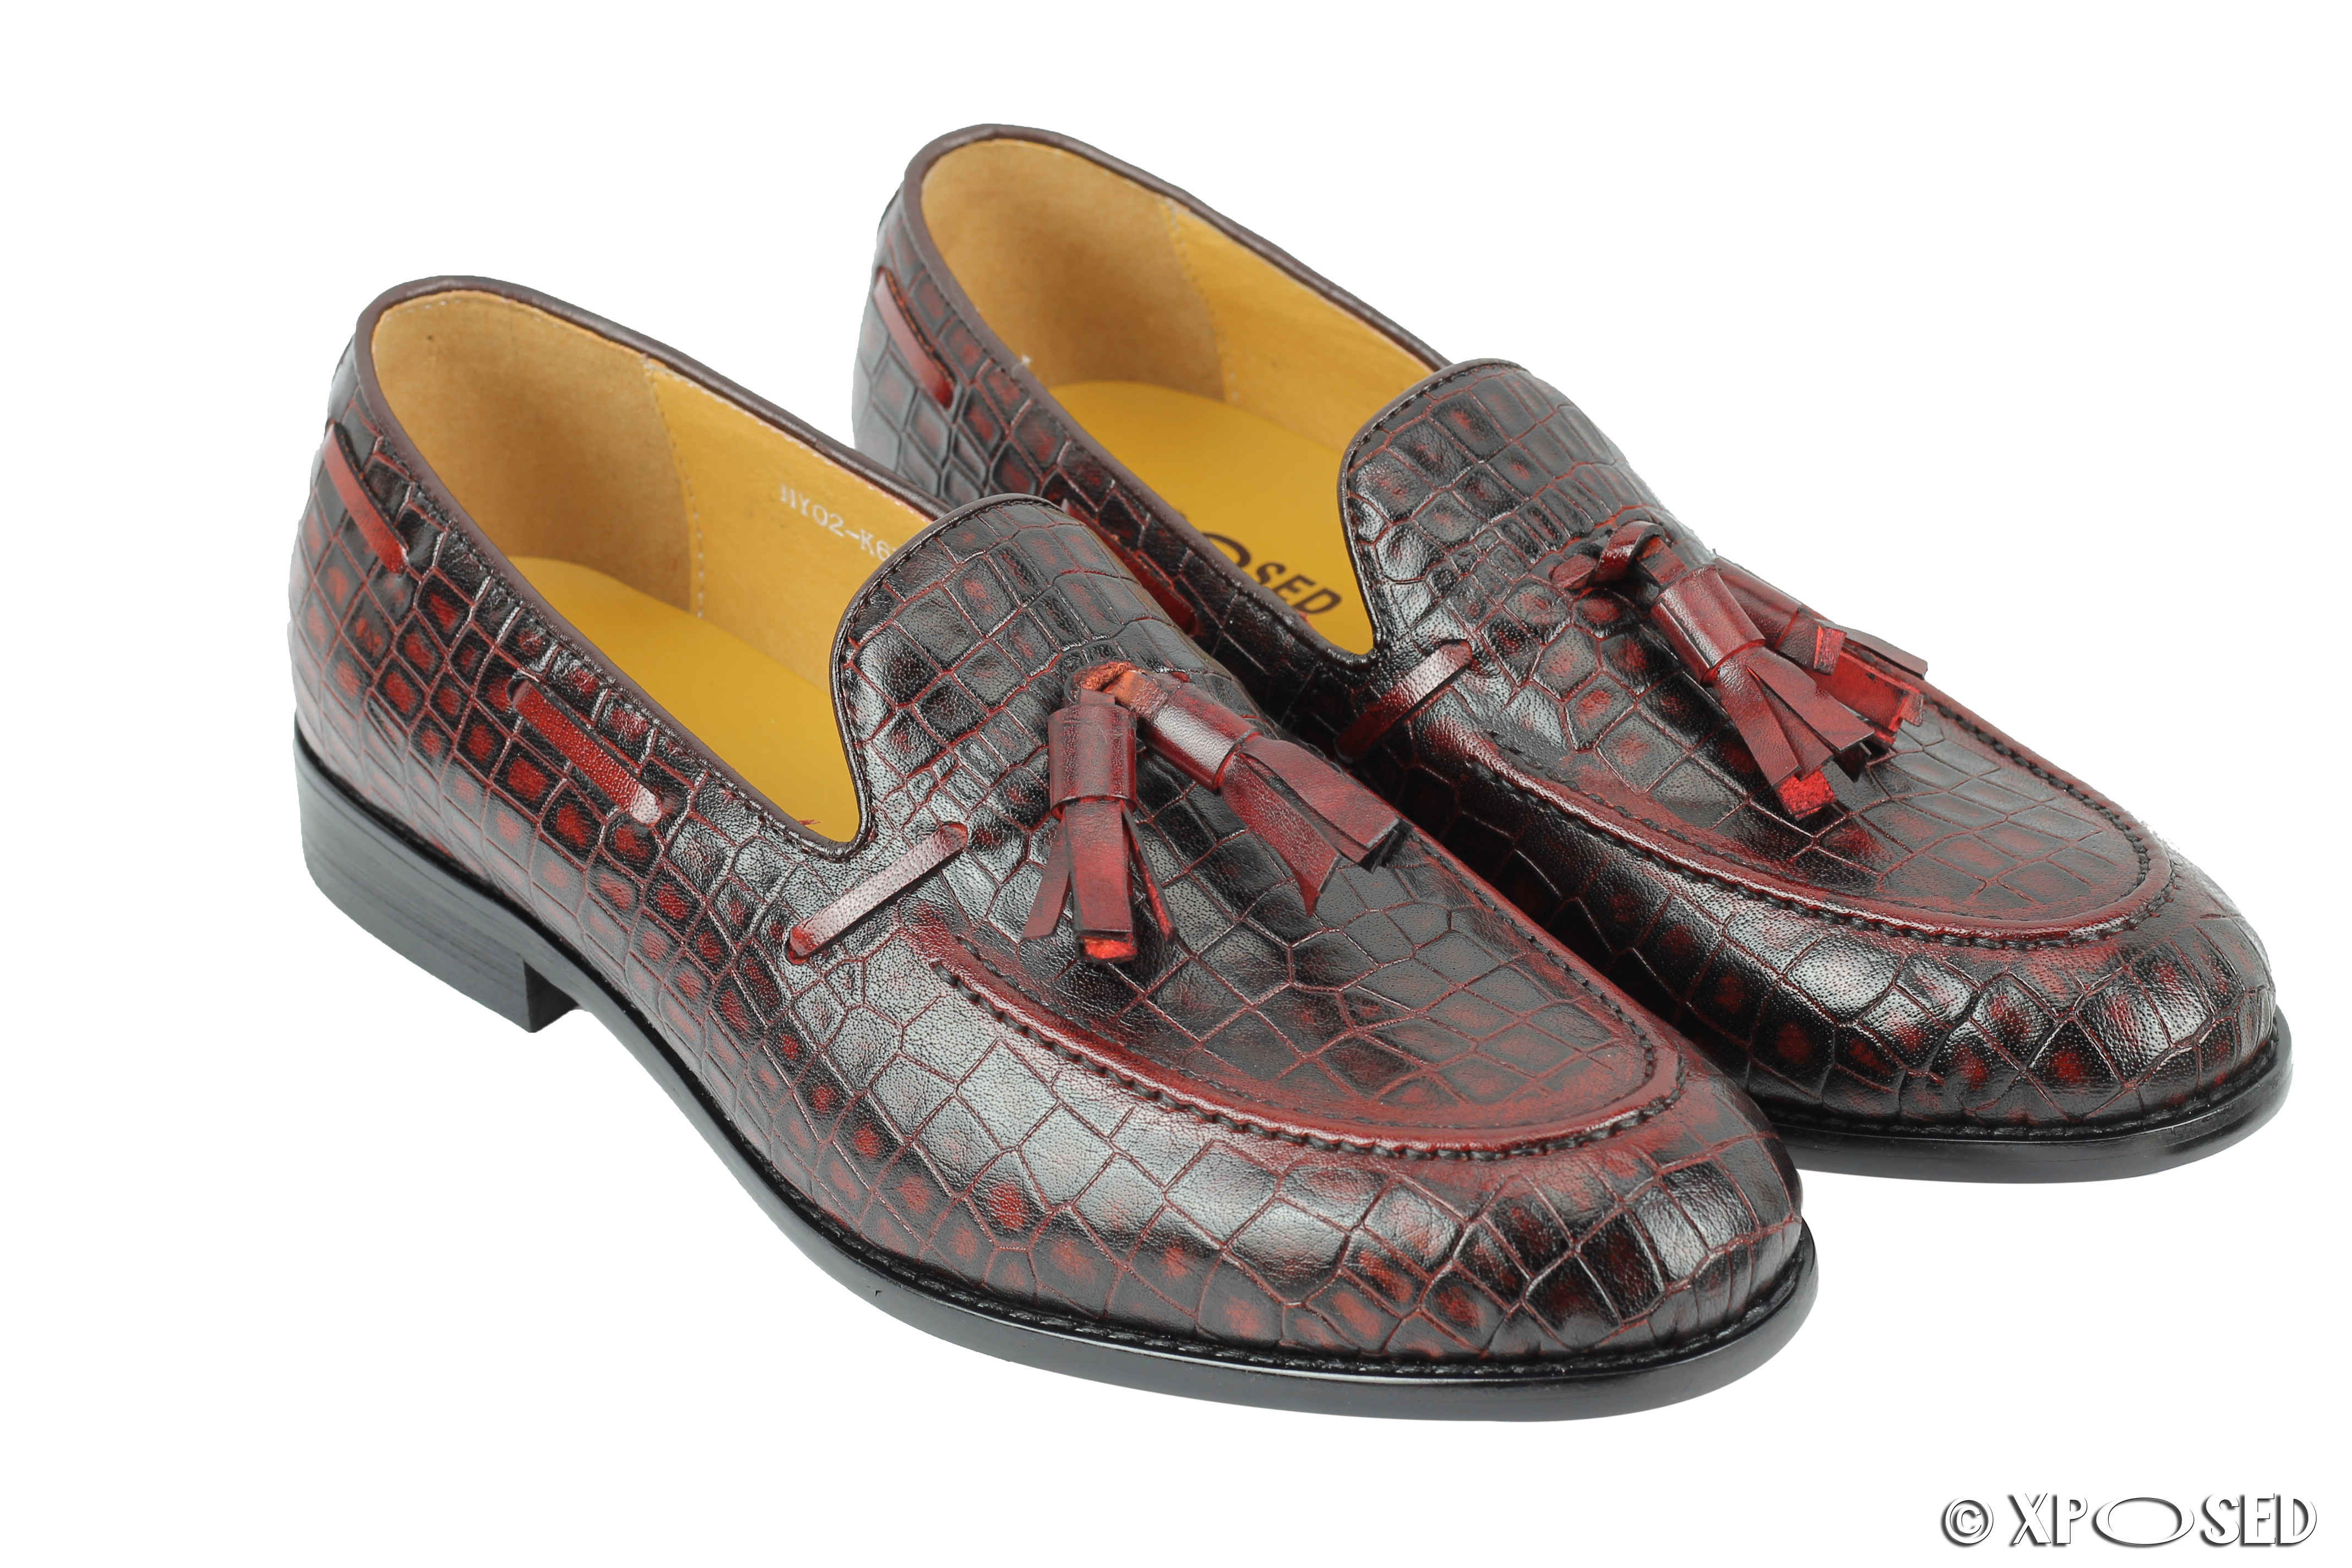 ed3c7995475 Mens Woven Look Real Leather Red Maroon Tassel Loafers Retro Dress Shoes UK  Size